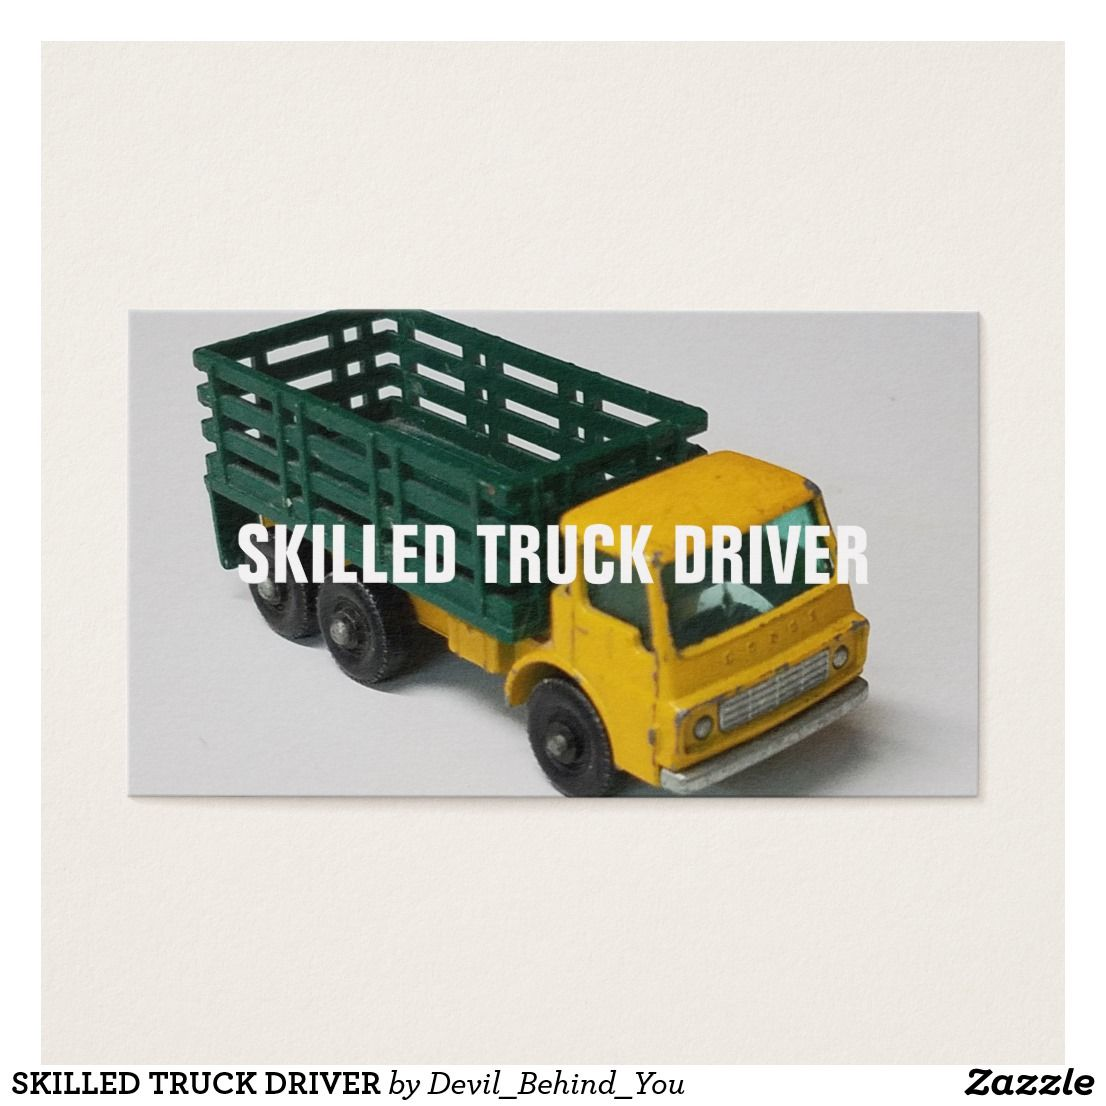 Skilled truck driver business card | Business cards and Business